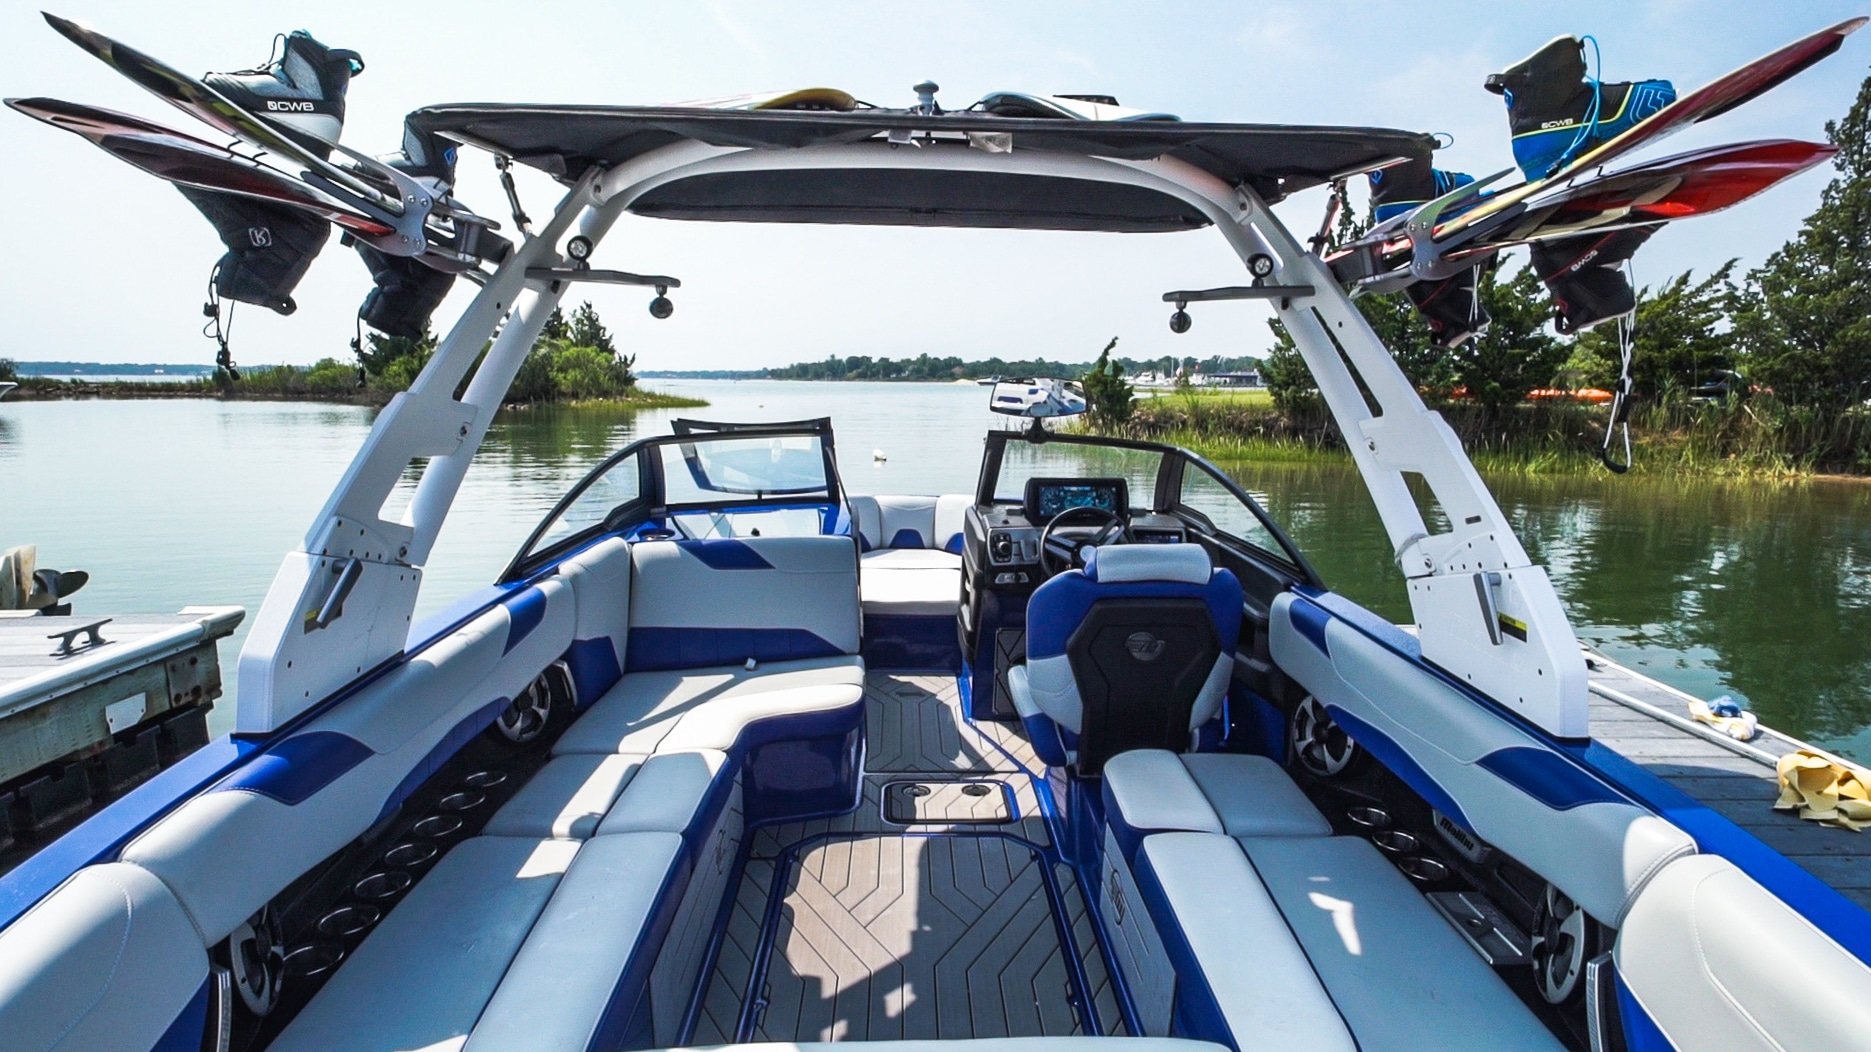 2019 Malibu Boats 22 VLX at Peconic Water Sports in Southold, NY